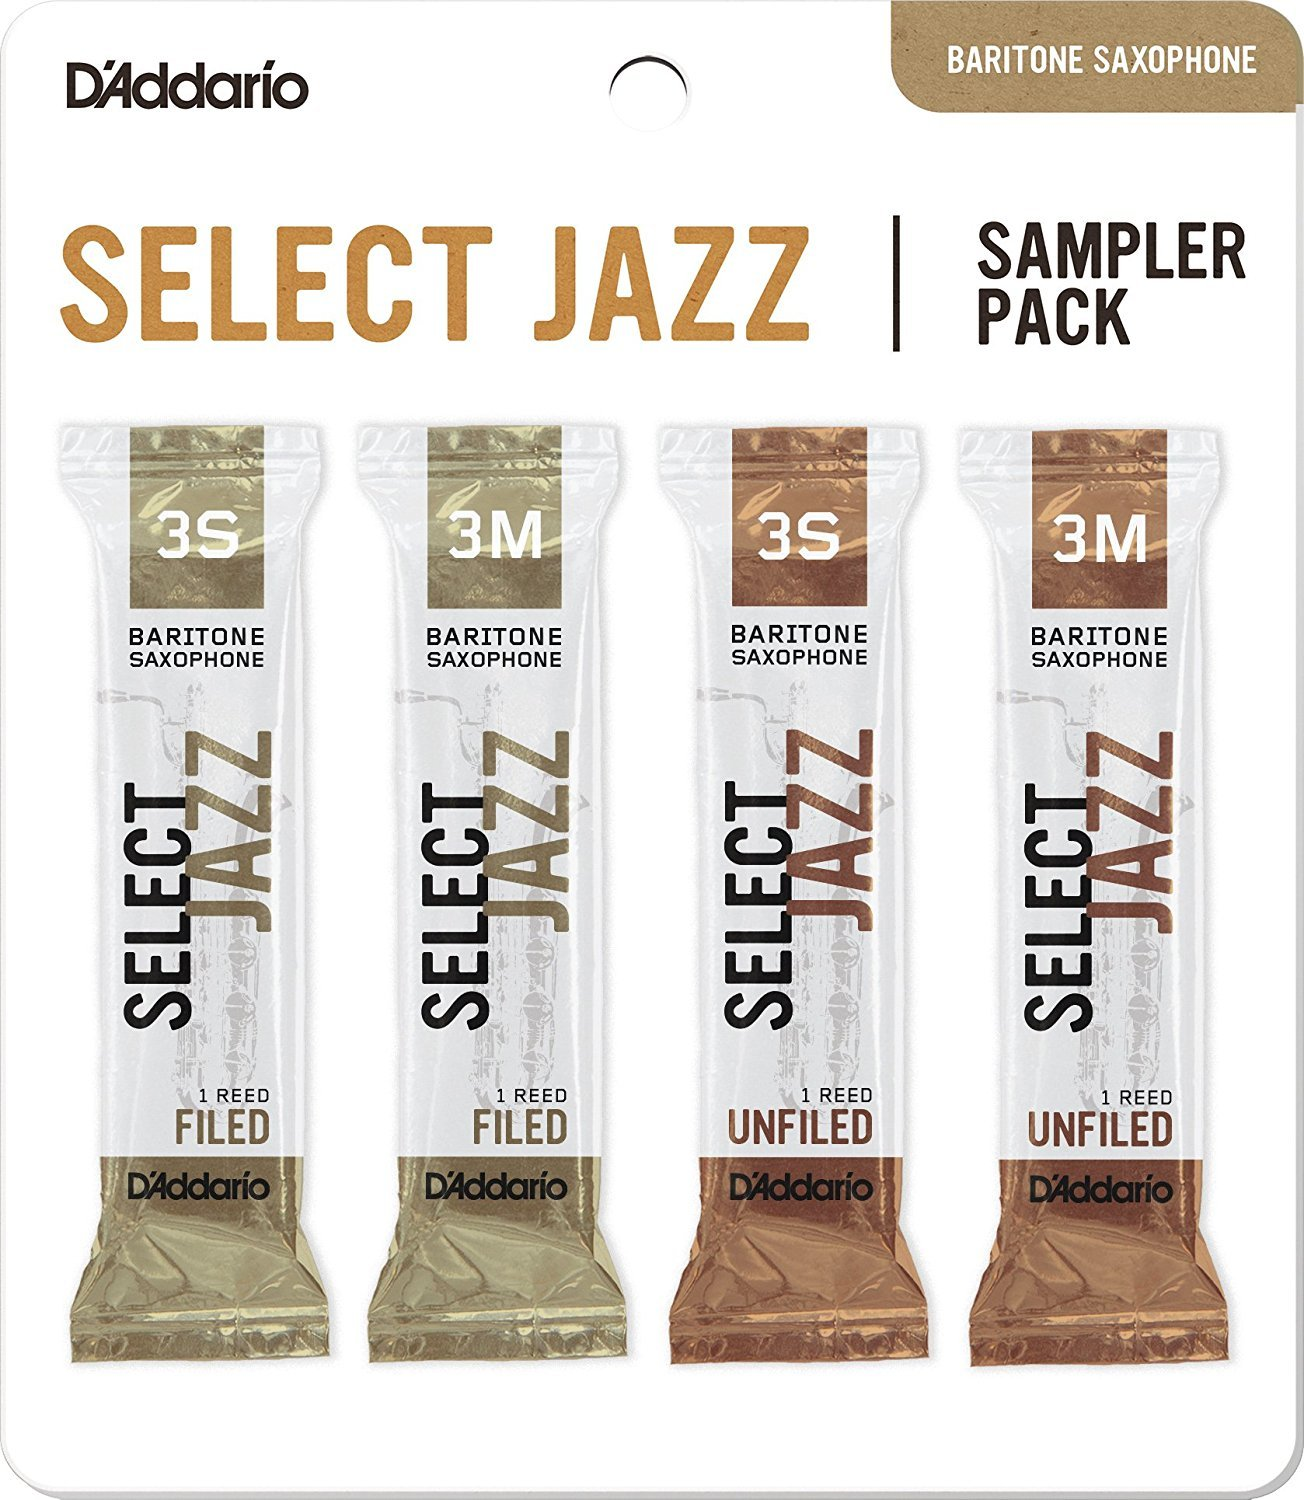 D'Addario Woodwinds DSJ-L3S Select Jazz Baritone Saxophone Reed Sampler Pack, 3S/3M D'Addario &Co. Inc